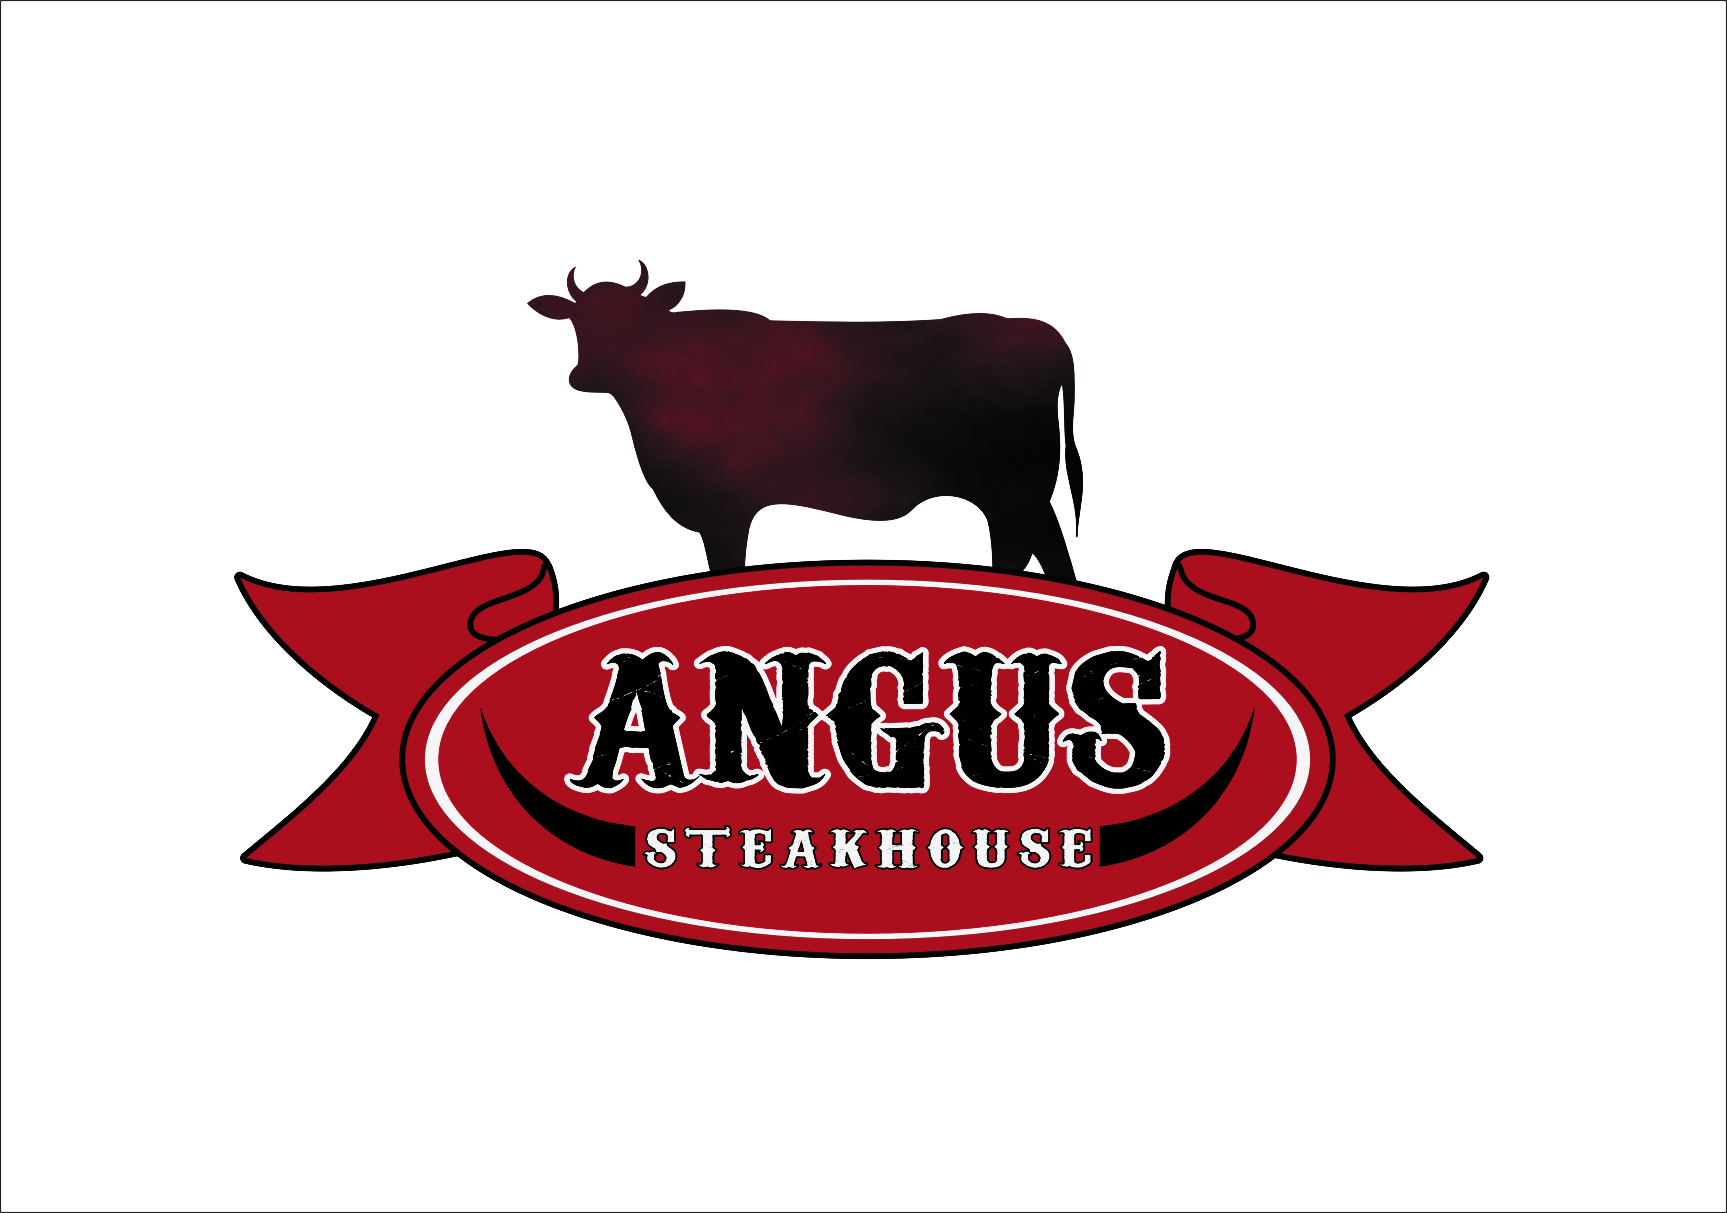 Logo Design by Ngepet_art - Entry No. 118 in the Logo Design Contest Imaginative Custom Design for Angus Steakhouse.